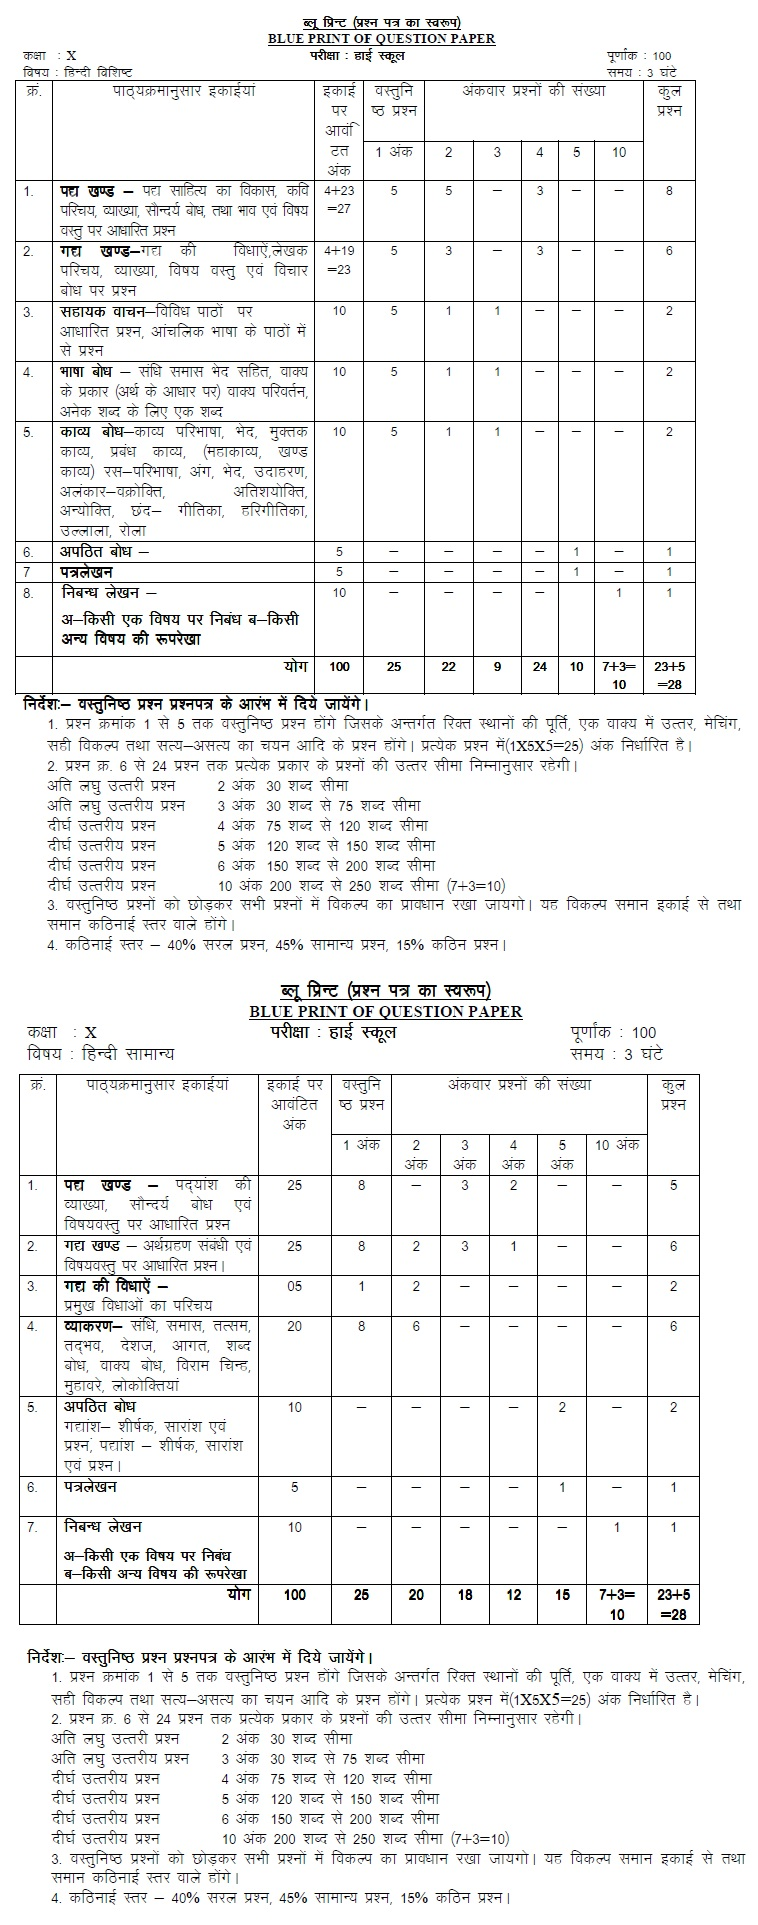 Mp board blue print of class x hindi question paper 2014 aglasem mp board blue print of class x hindi question paper 2014 malvernweather Gallery